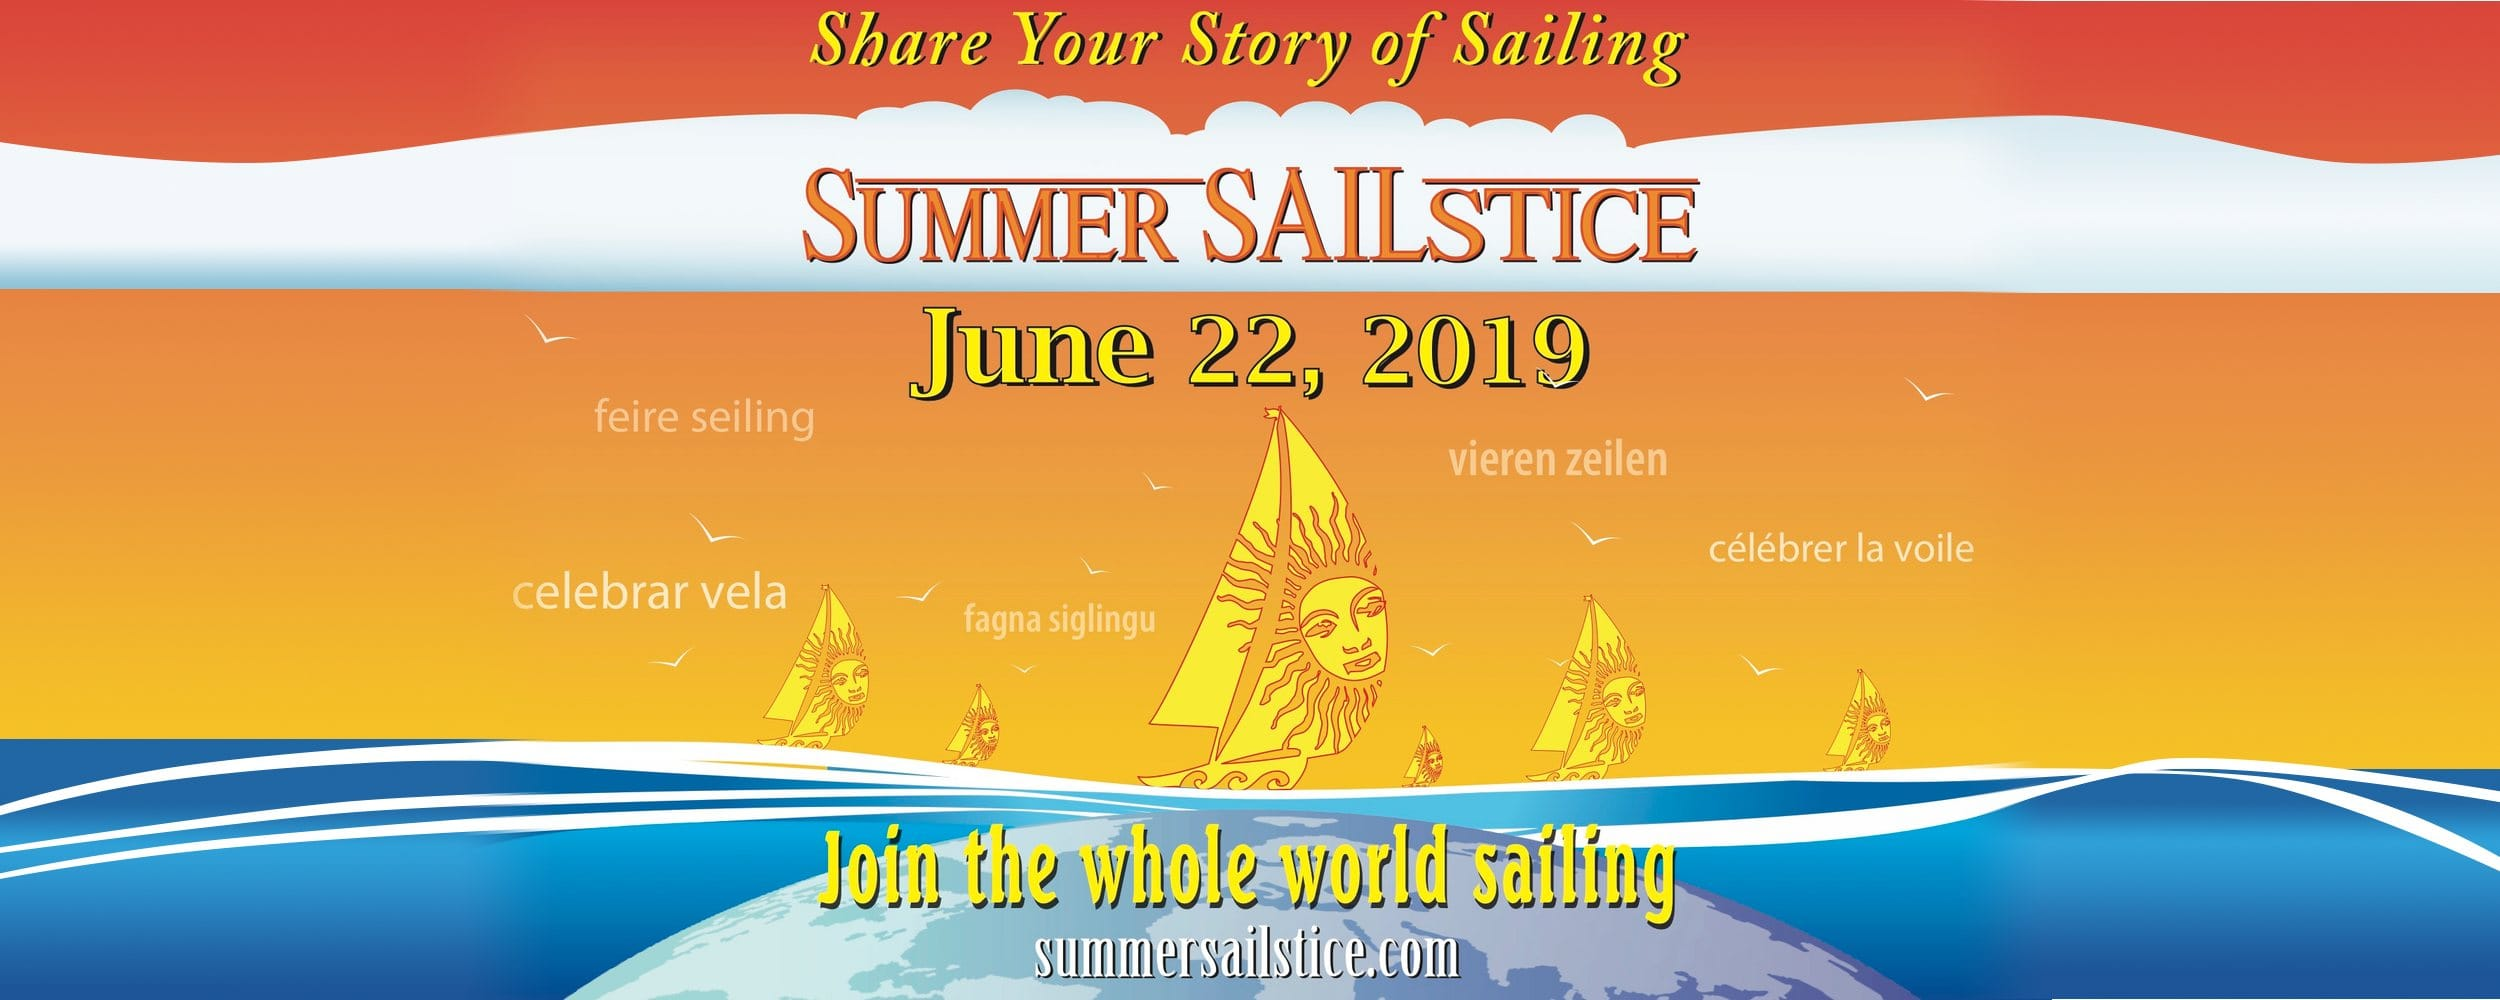 Summer Sailstice 2019